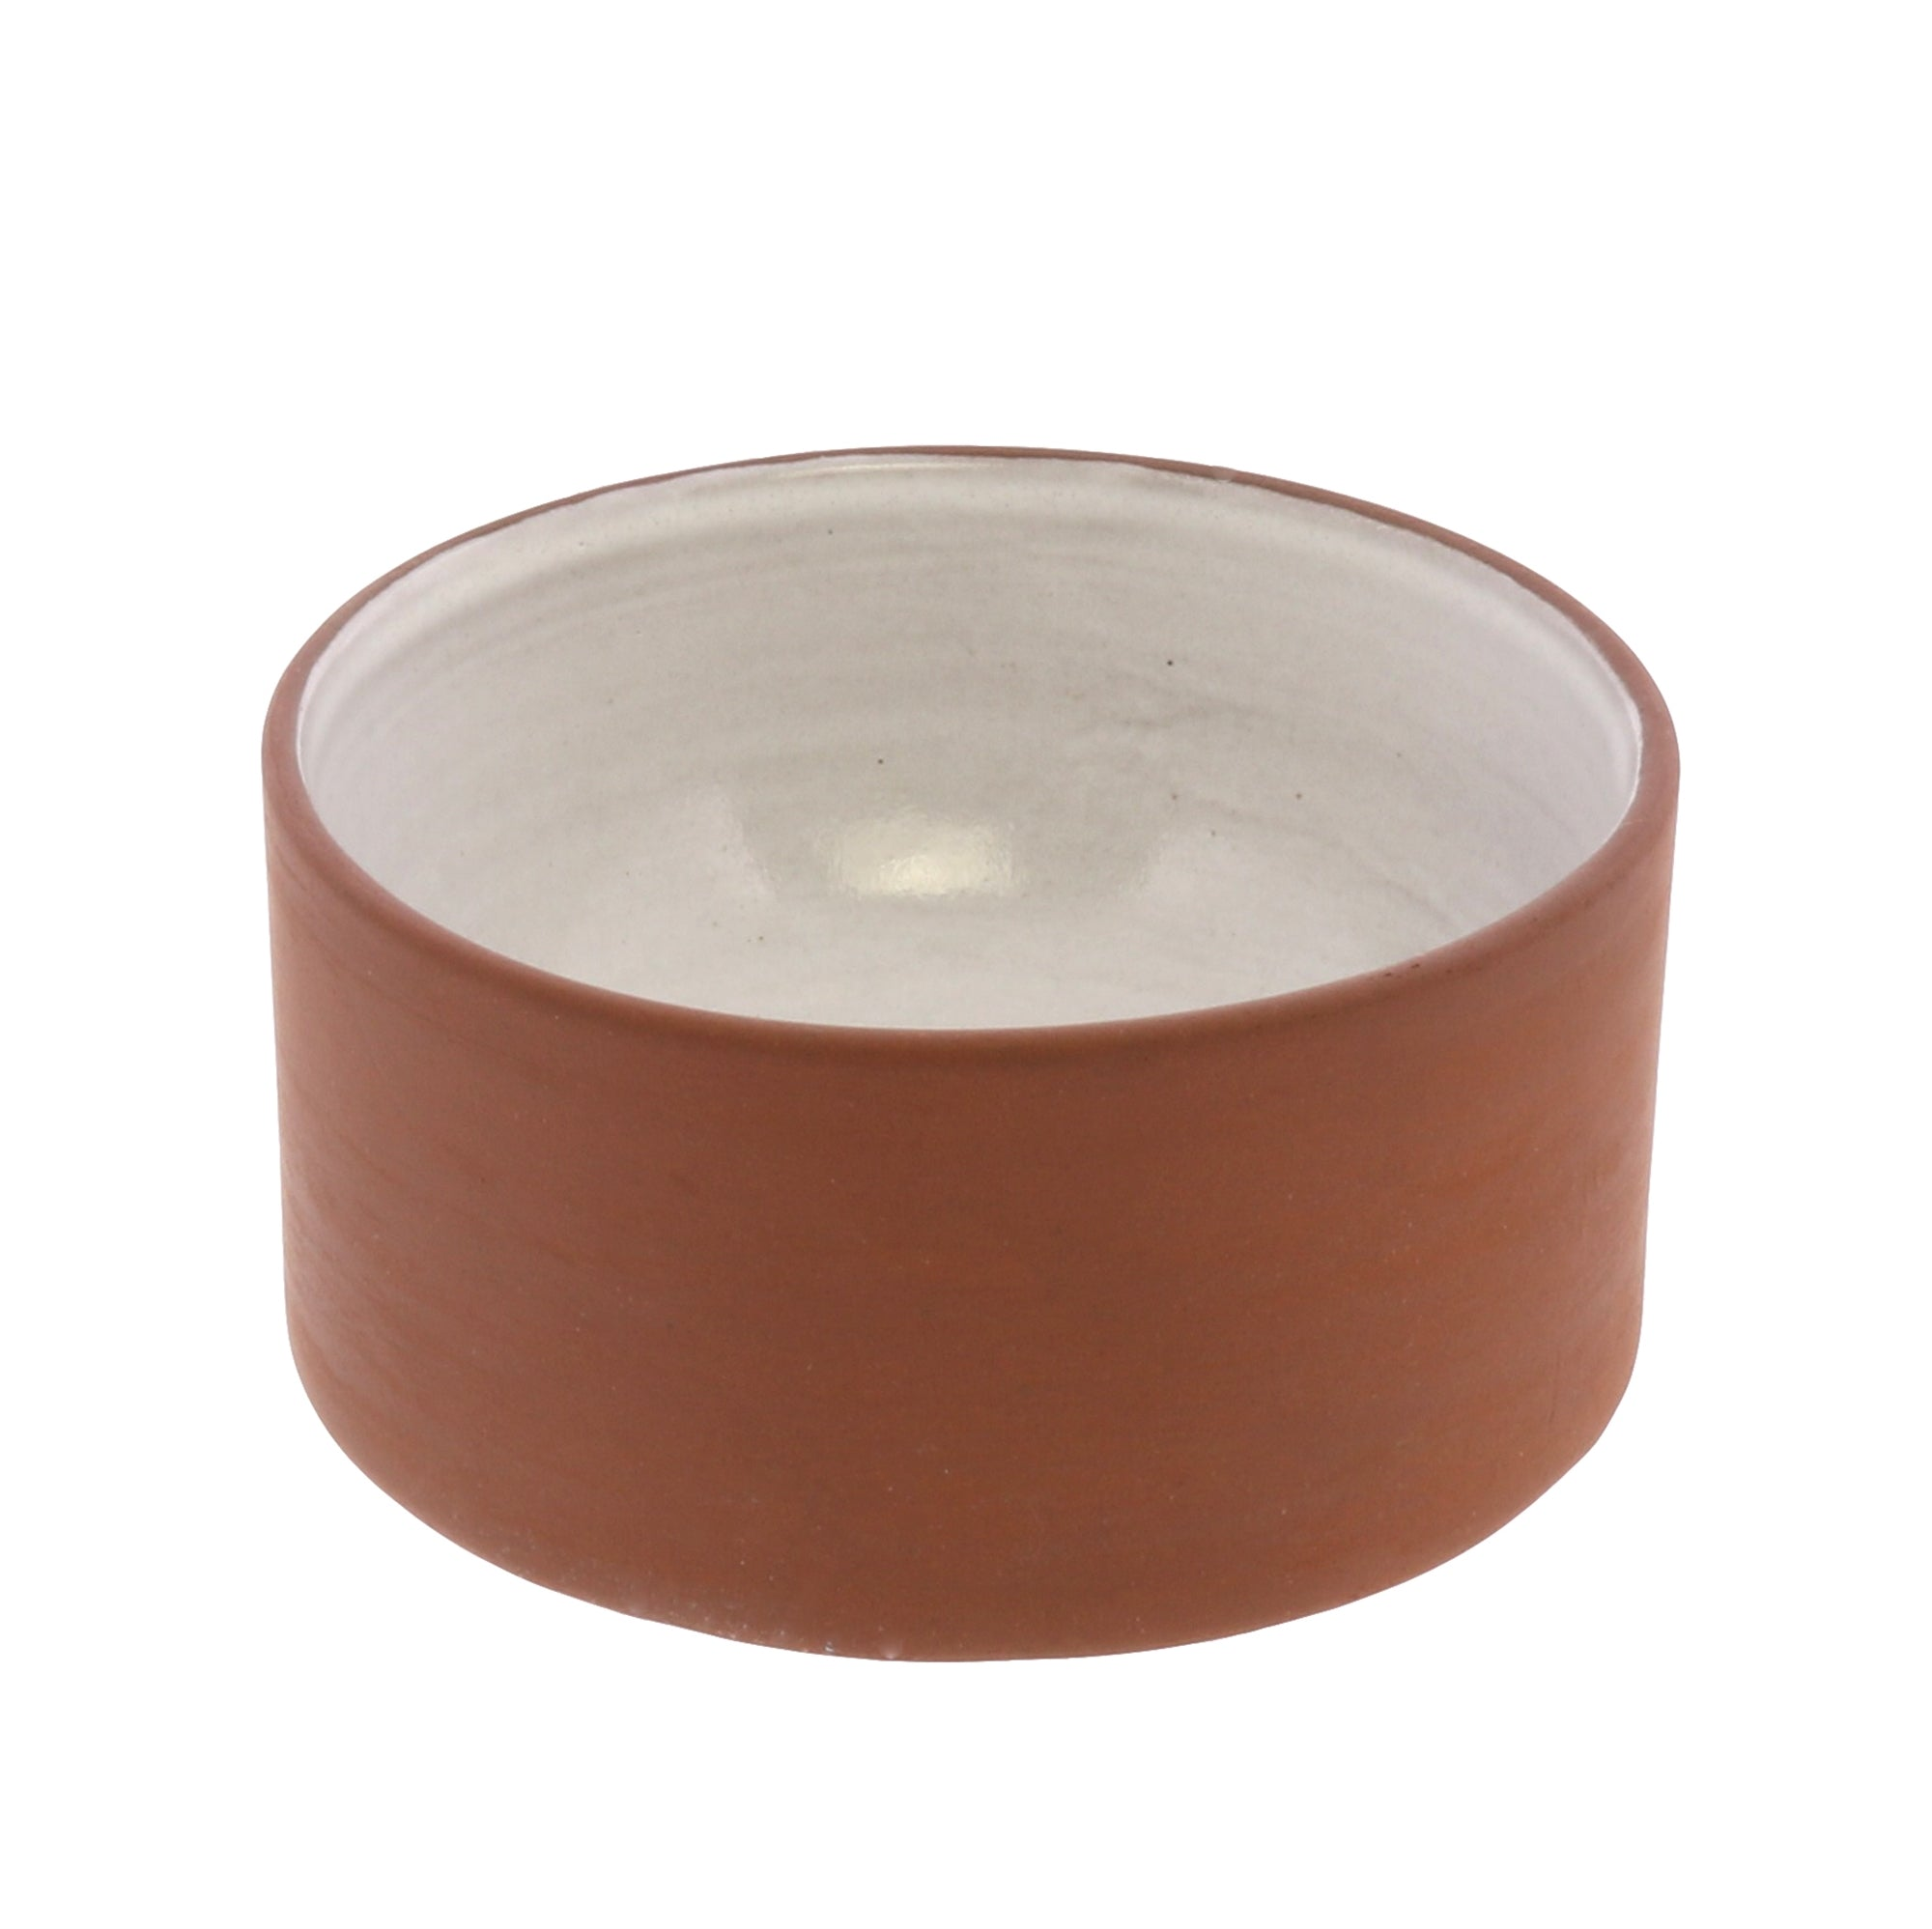 Corbet Bowl - 3 Sizes - CARLYLE AVENUE